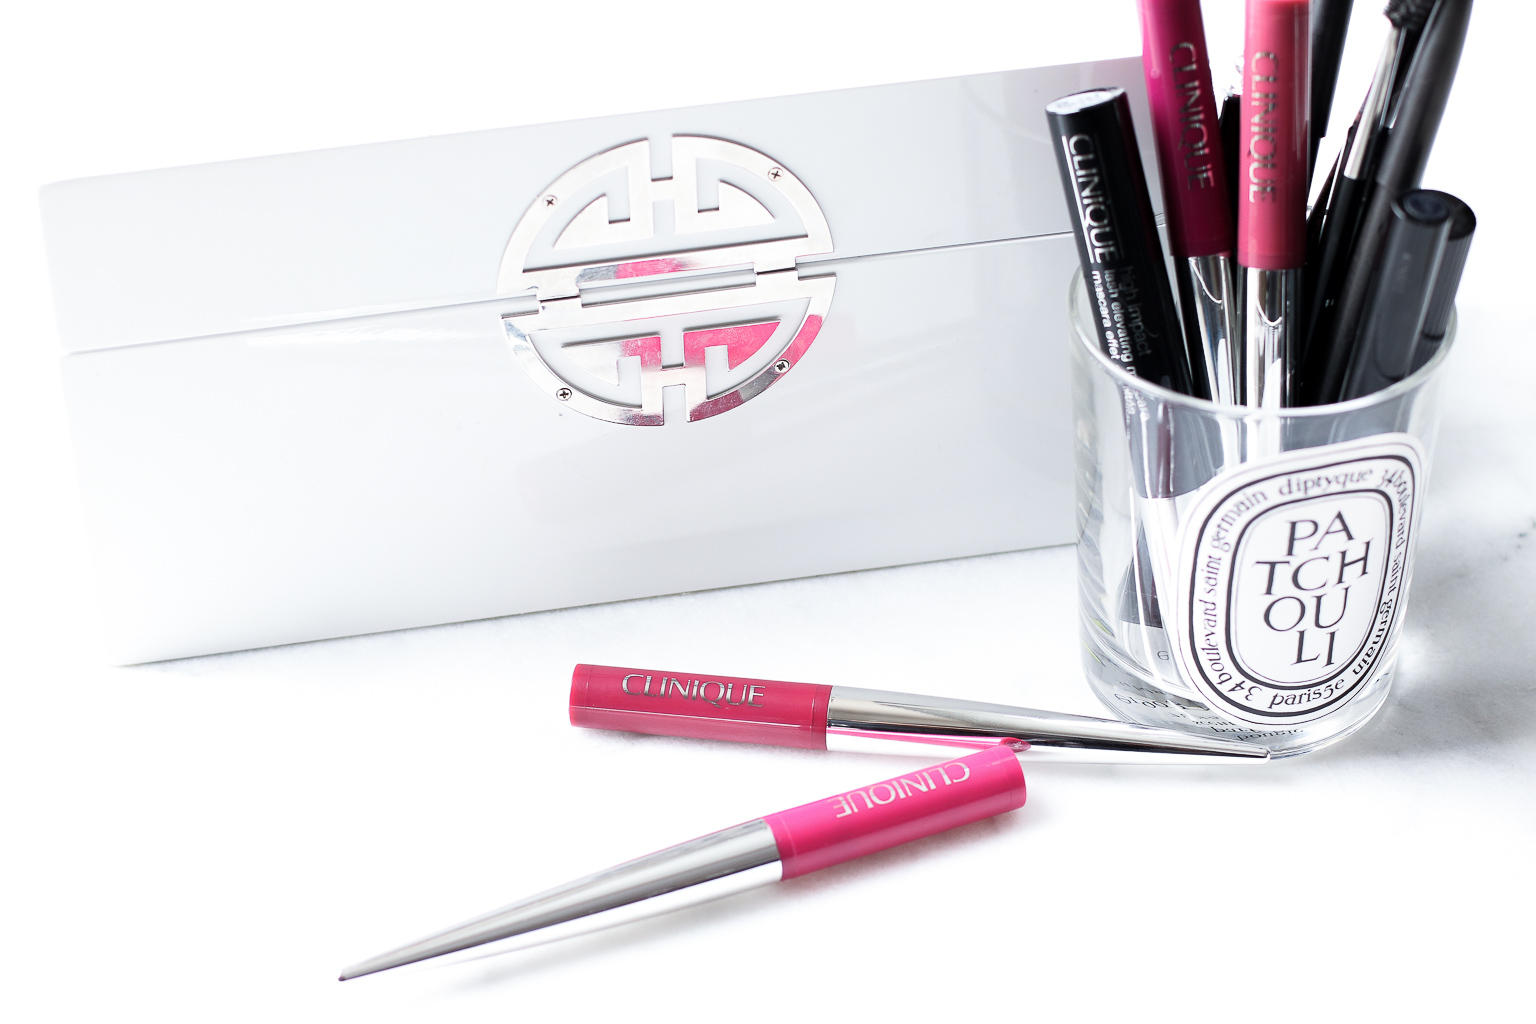 Clinique's Pop Lip Shadow is a great option for colourful lips in the winter! Just apply over your favourite lip balm!